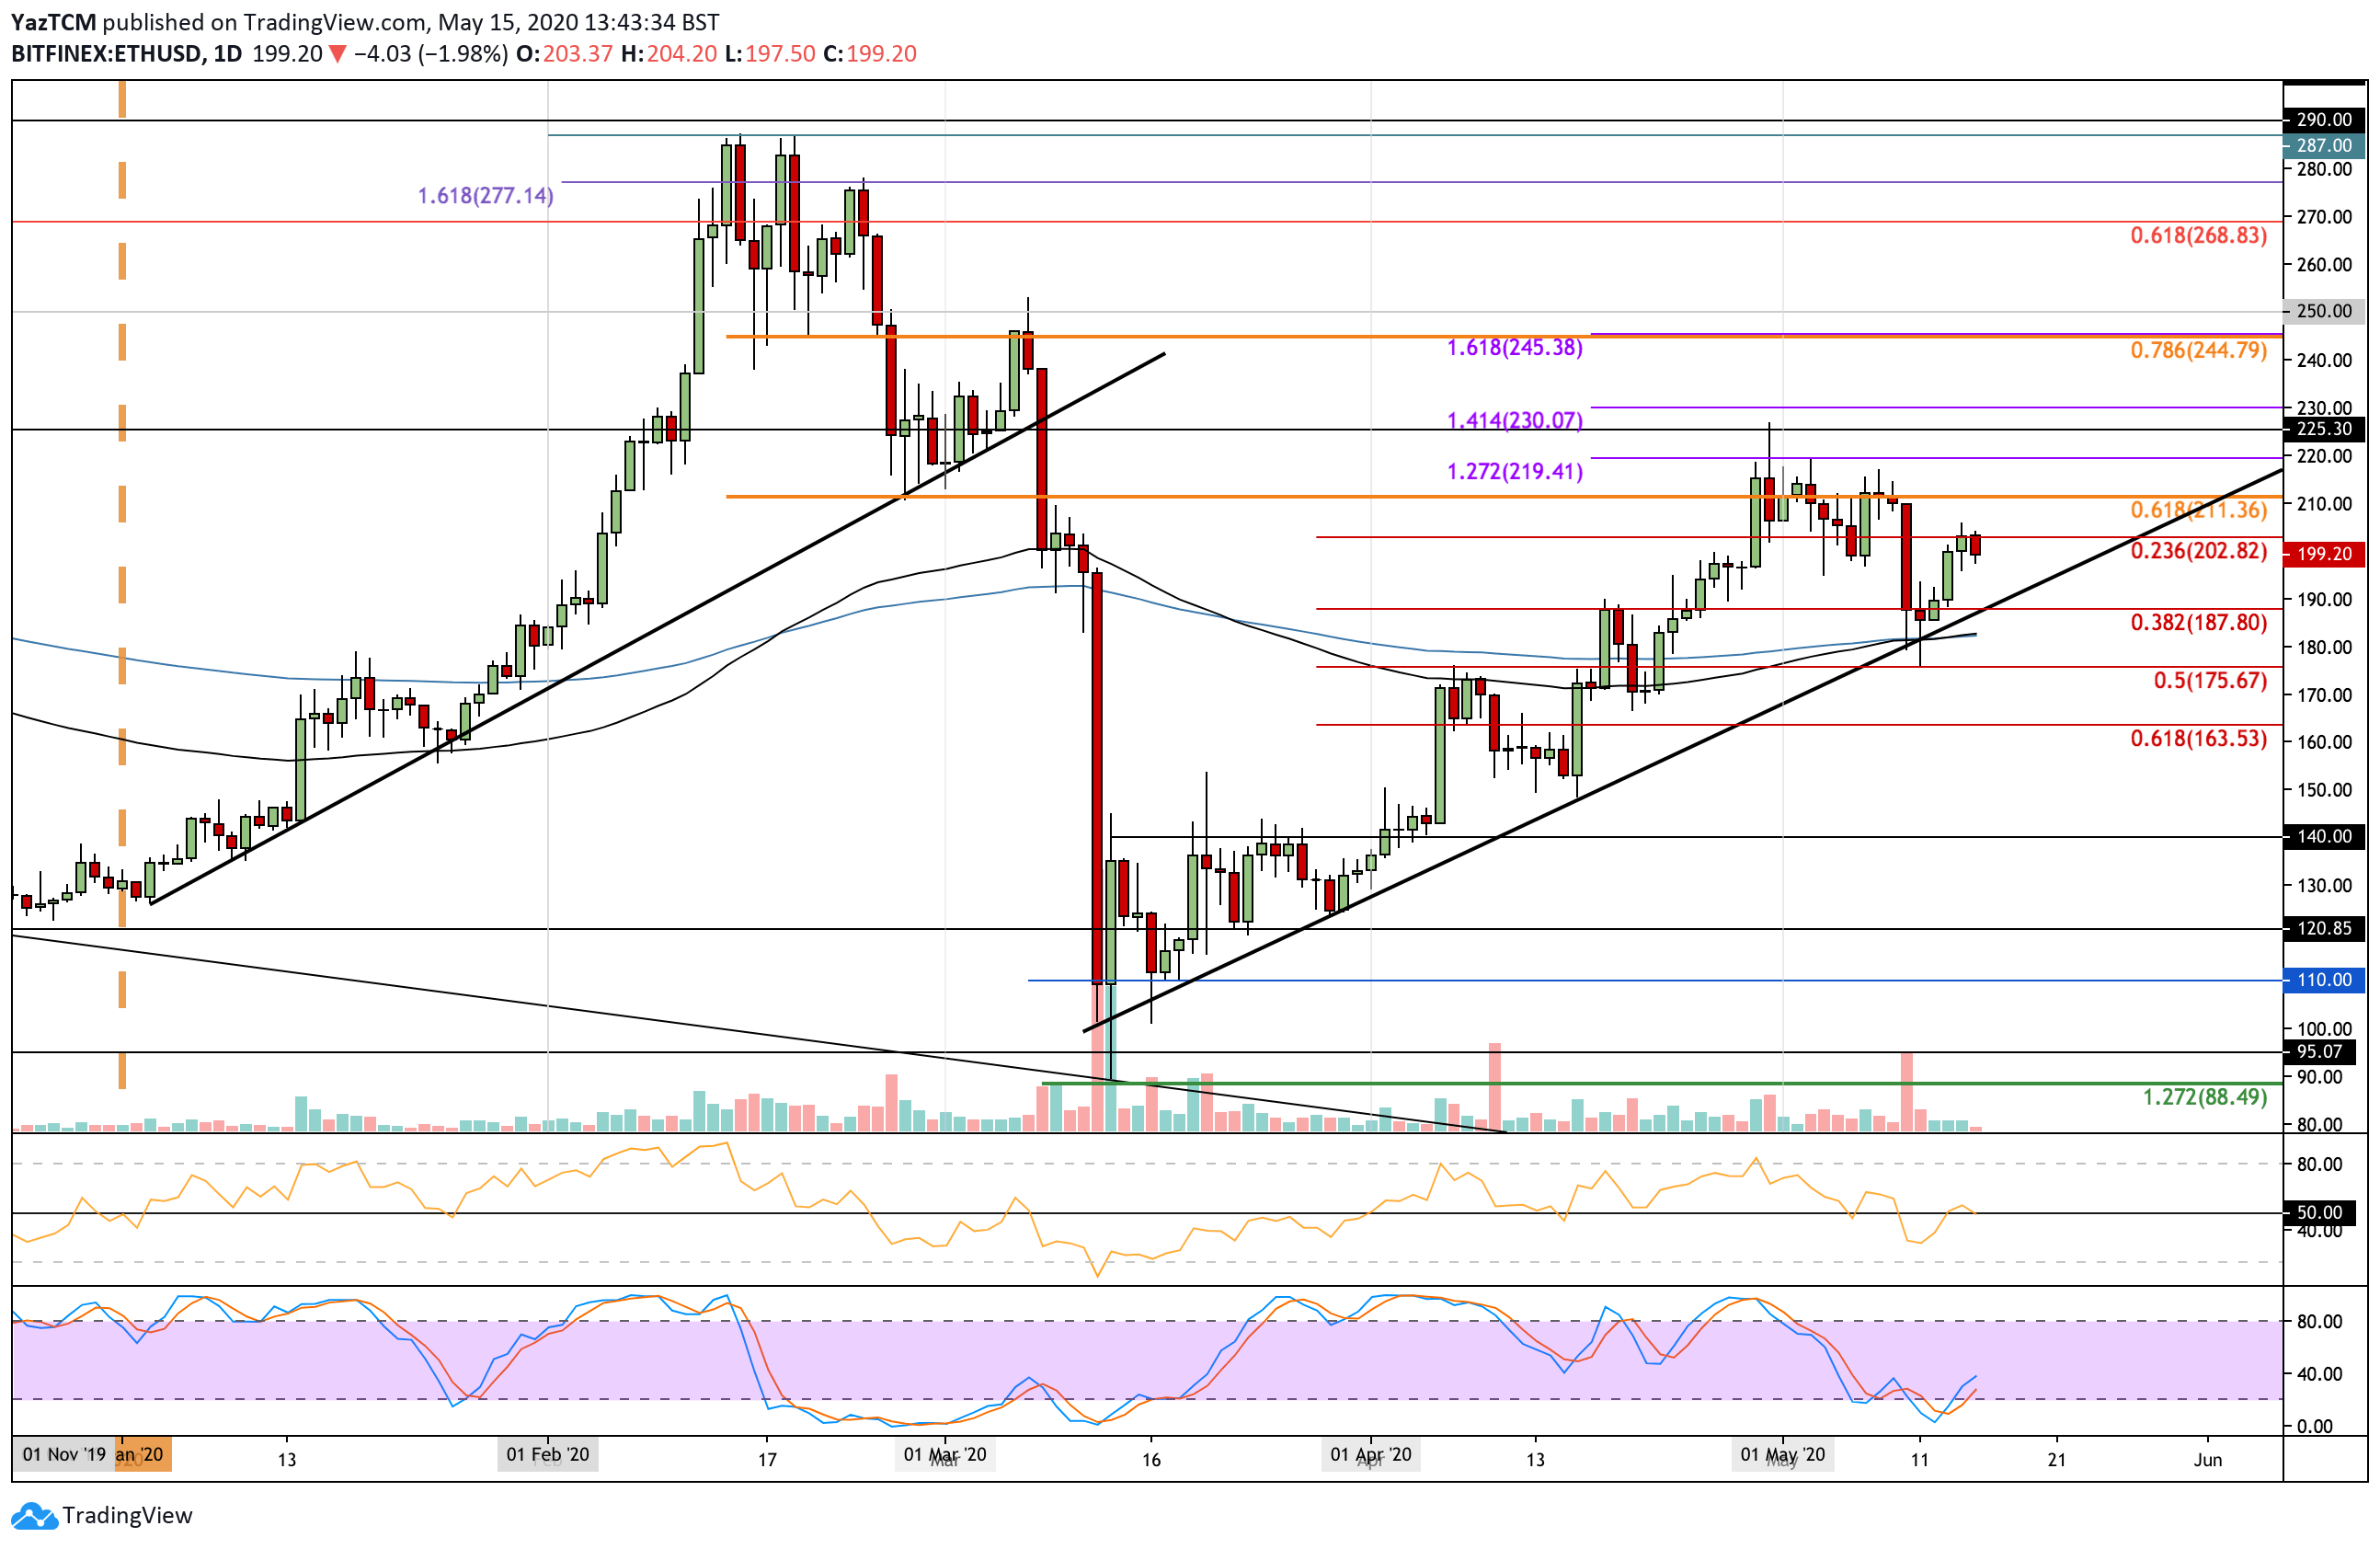 "ethusd-may15 ""width ="" 2588 ""top ="" 1684 ""srcset ="" https://cryptopotato.com/wp-content/uploads/2020/05/ethusd-may15.png 2588w, https://cryptopotato.com/ wp-content / uploads / 2020/05 / ethusd-may15-300x195.png 300w, https://cryptopotato.com/wp-content/uploads/2020/05/ethusd-may15-1024x666.png 1024w, https: // cryptopotato.com/wp-content/uploads/2020/05/ethusd-may15-768x500.png 768w, https://cryptopotato.com/wp-content/uploads/2020/05/ethusd-may15-1536x999.png 1536w, https://cryptopotato.com/wp-content/uploads/2020/05/ethusd-may15-2048x1333.png 2048w, https://cryptopotato.com/wp-content/uploads/2020/05/ethusd-may15-50x33 .png 50w ""data-lazy-size ="" (max-width: 2588px) 100vw, 2588px ""src ="" https://cryptopotato.com/wp-content/uploads/2020/05/ethusd-may15.png ""/ ><noscript><img class="